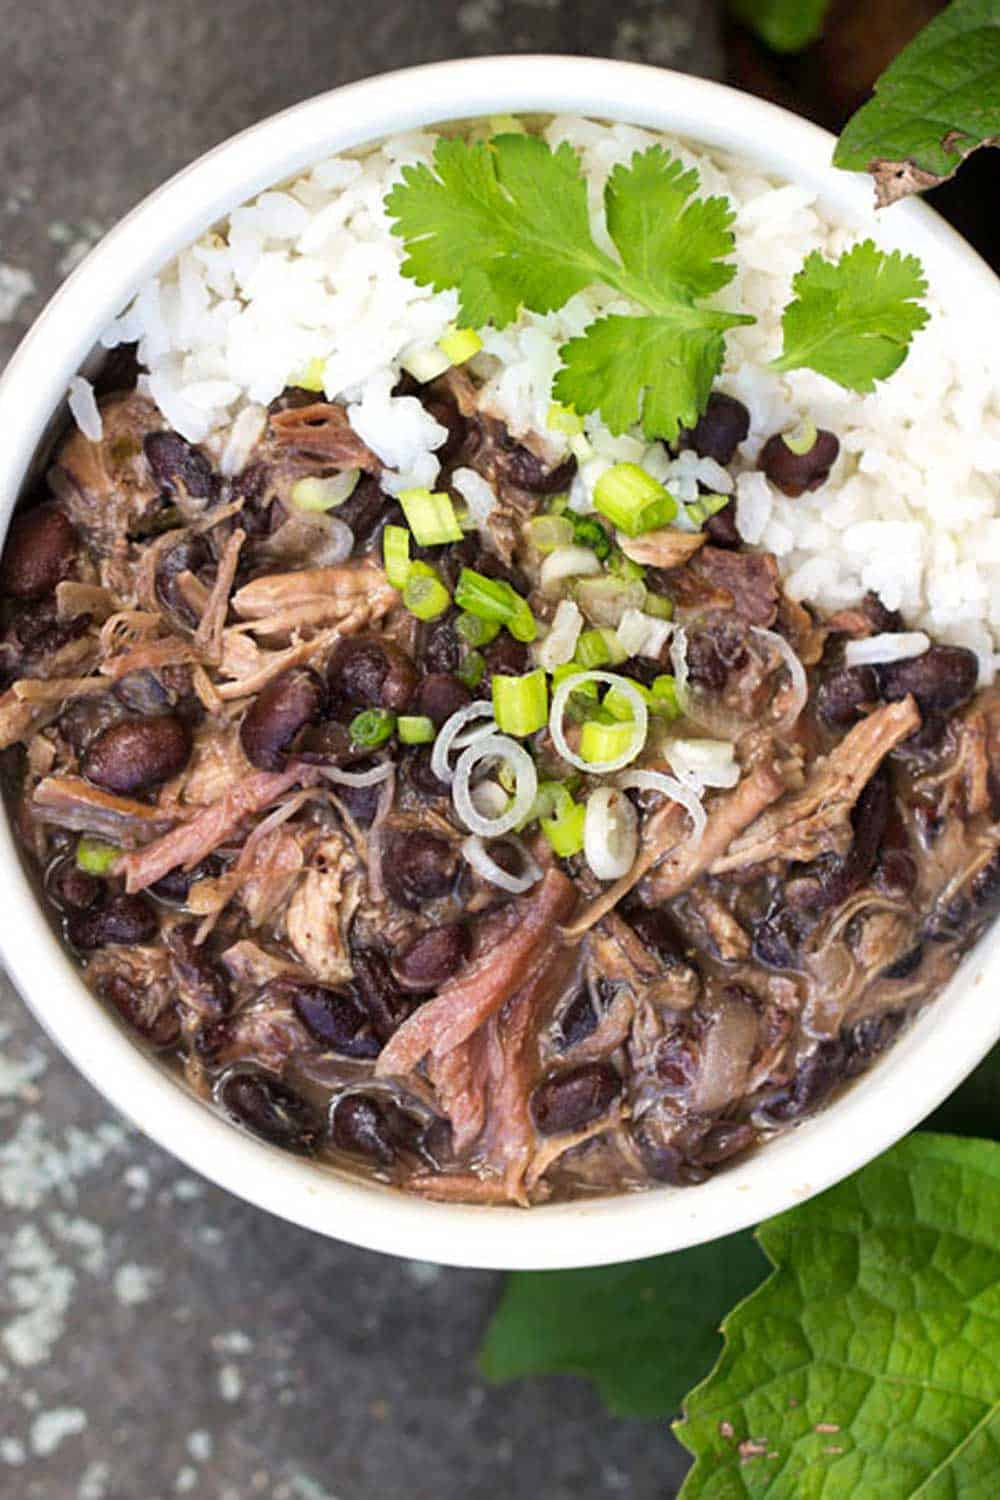 Slow cooker Brazilian Feijoada, Brazil's famous meat and bean stew, with rice, in a white bowl